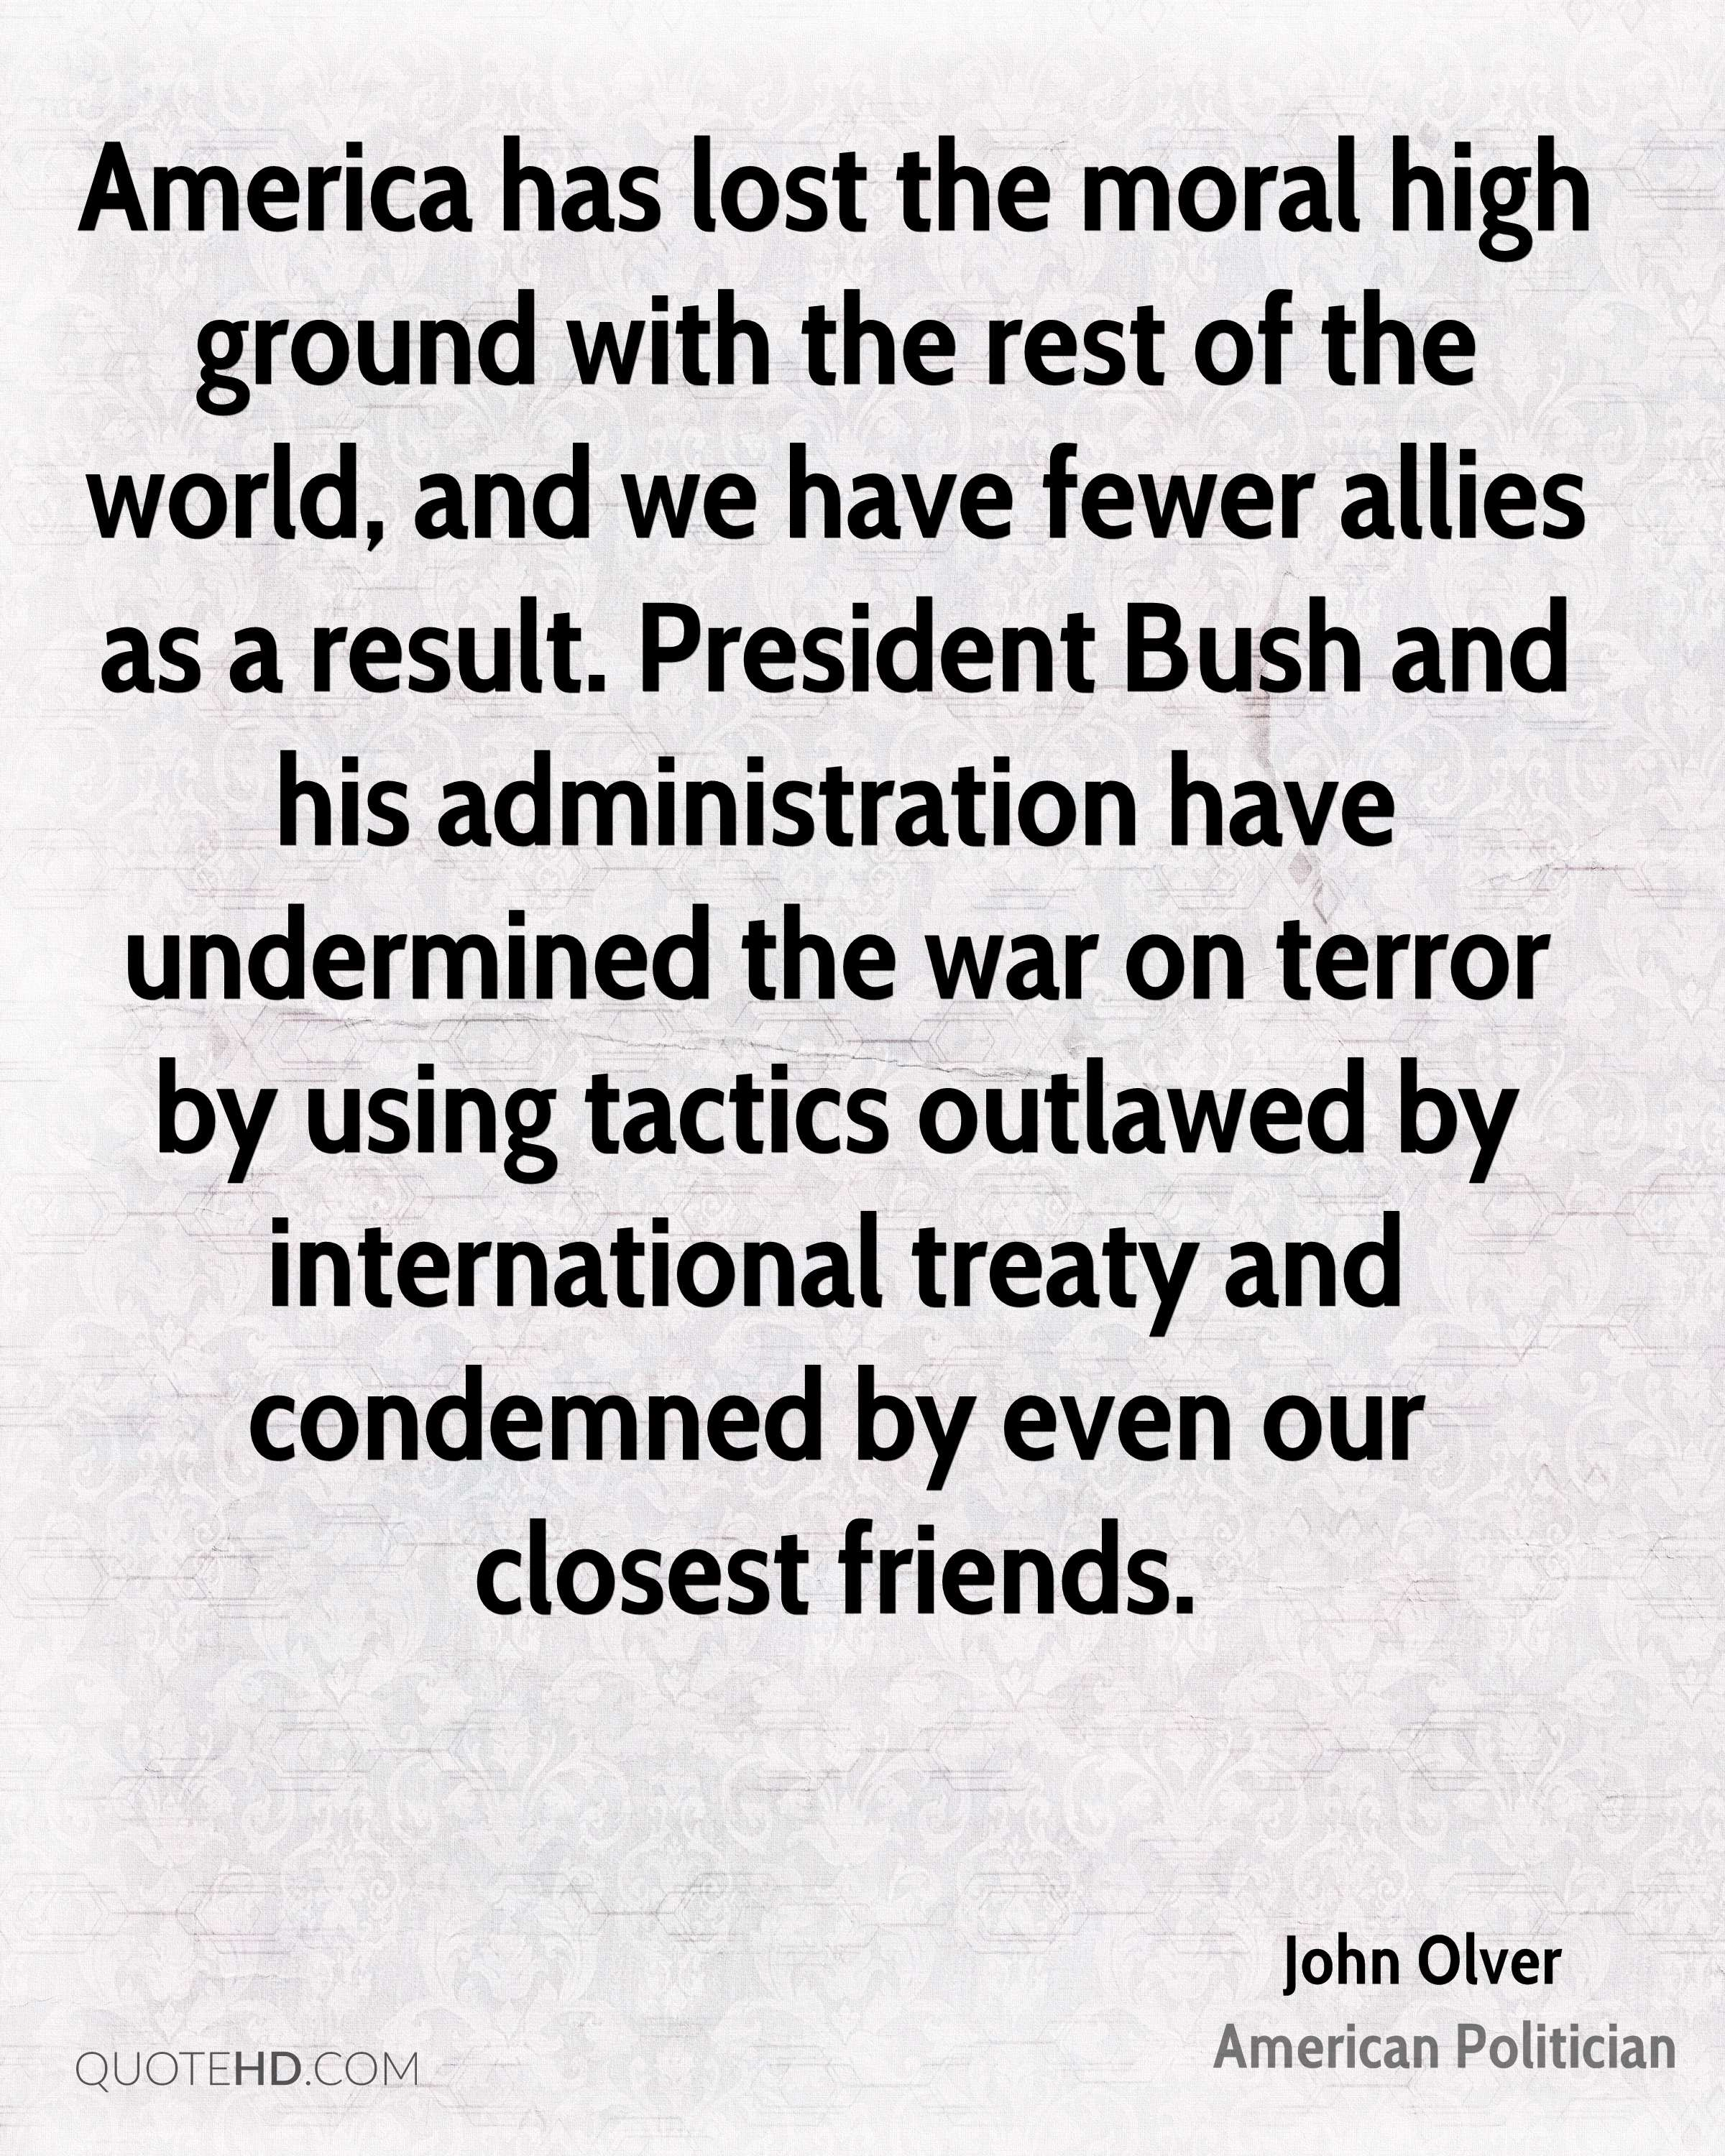 America has lost the moral high ground with the rest of the world, and we have fewer allies as a result. President Bush and his administration have undermined the war on terror by using tactics outlawed by international treaty and condemned by even our closest friends.